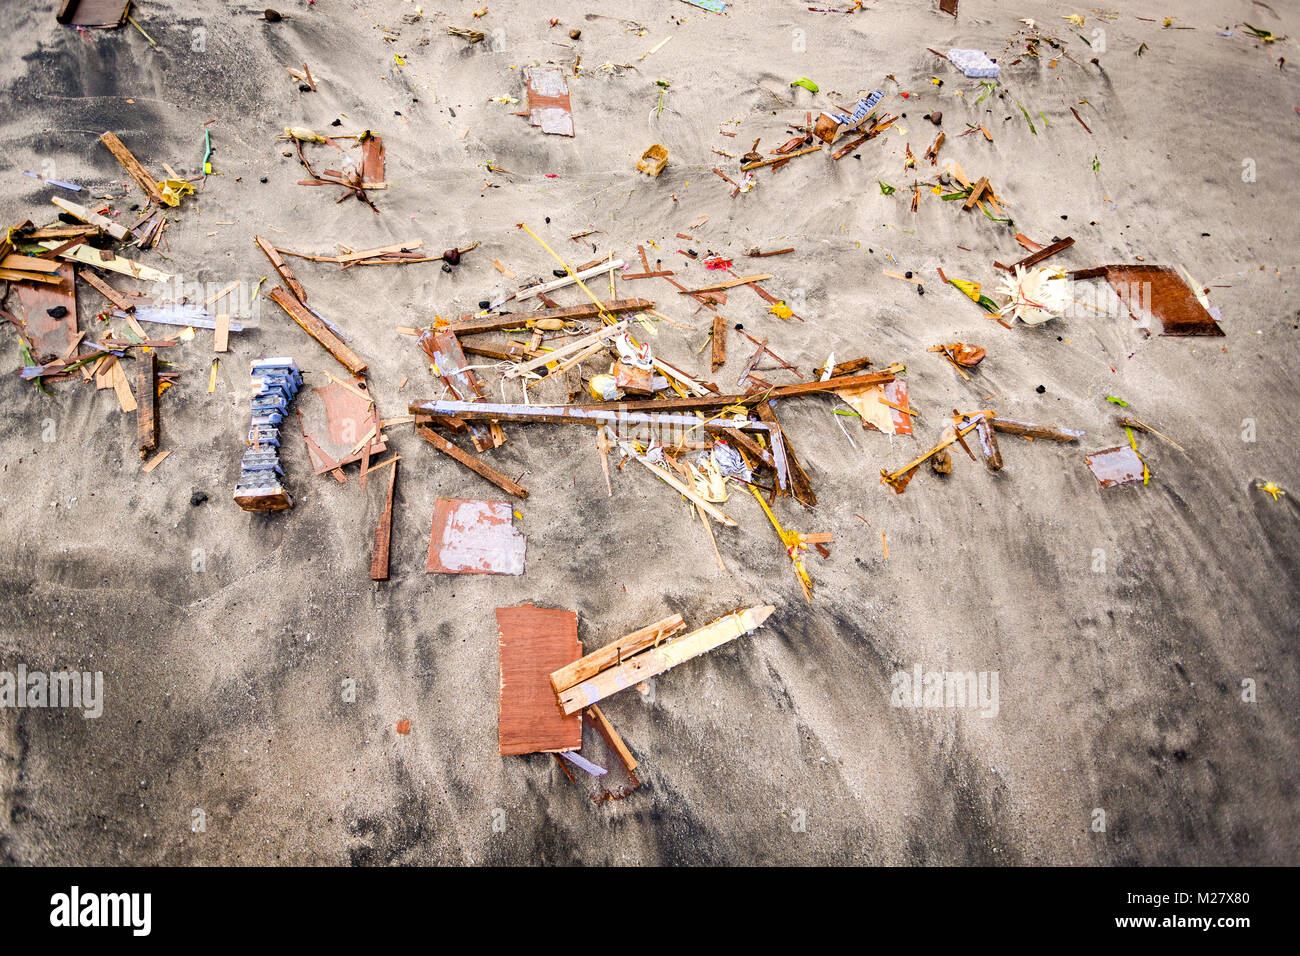 Bali, August 30, 2013: Sea funeral ceremony at Bias Tugel Beach in Bali - the coffin and its remains Stock Photo